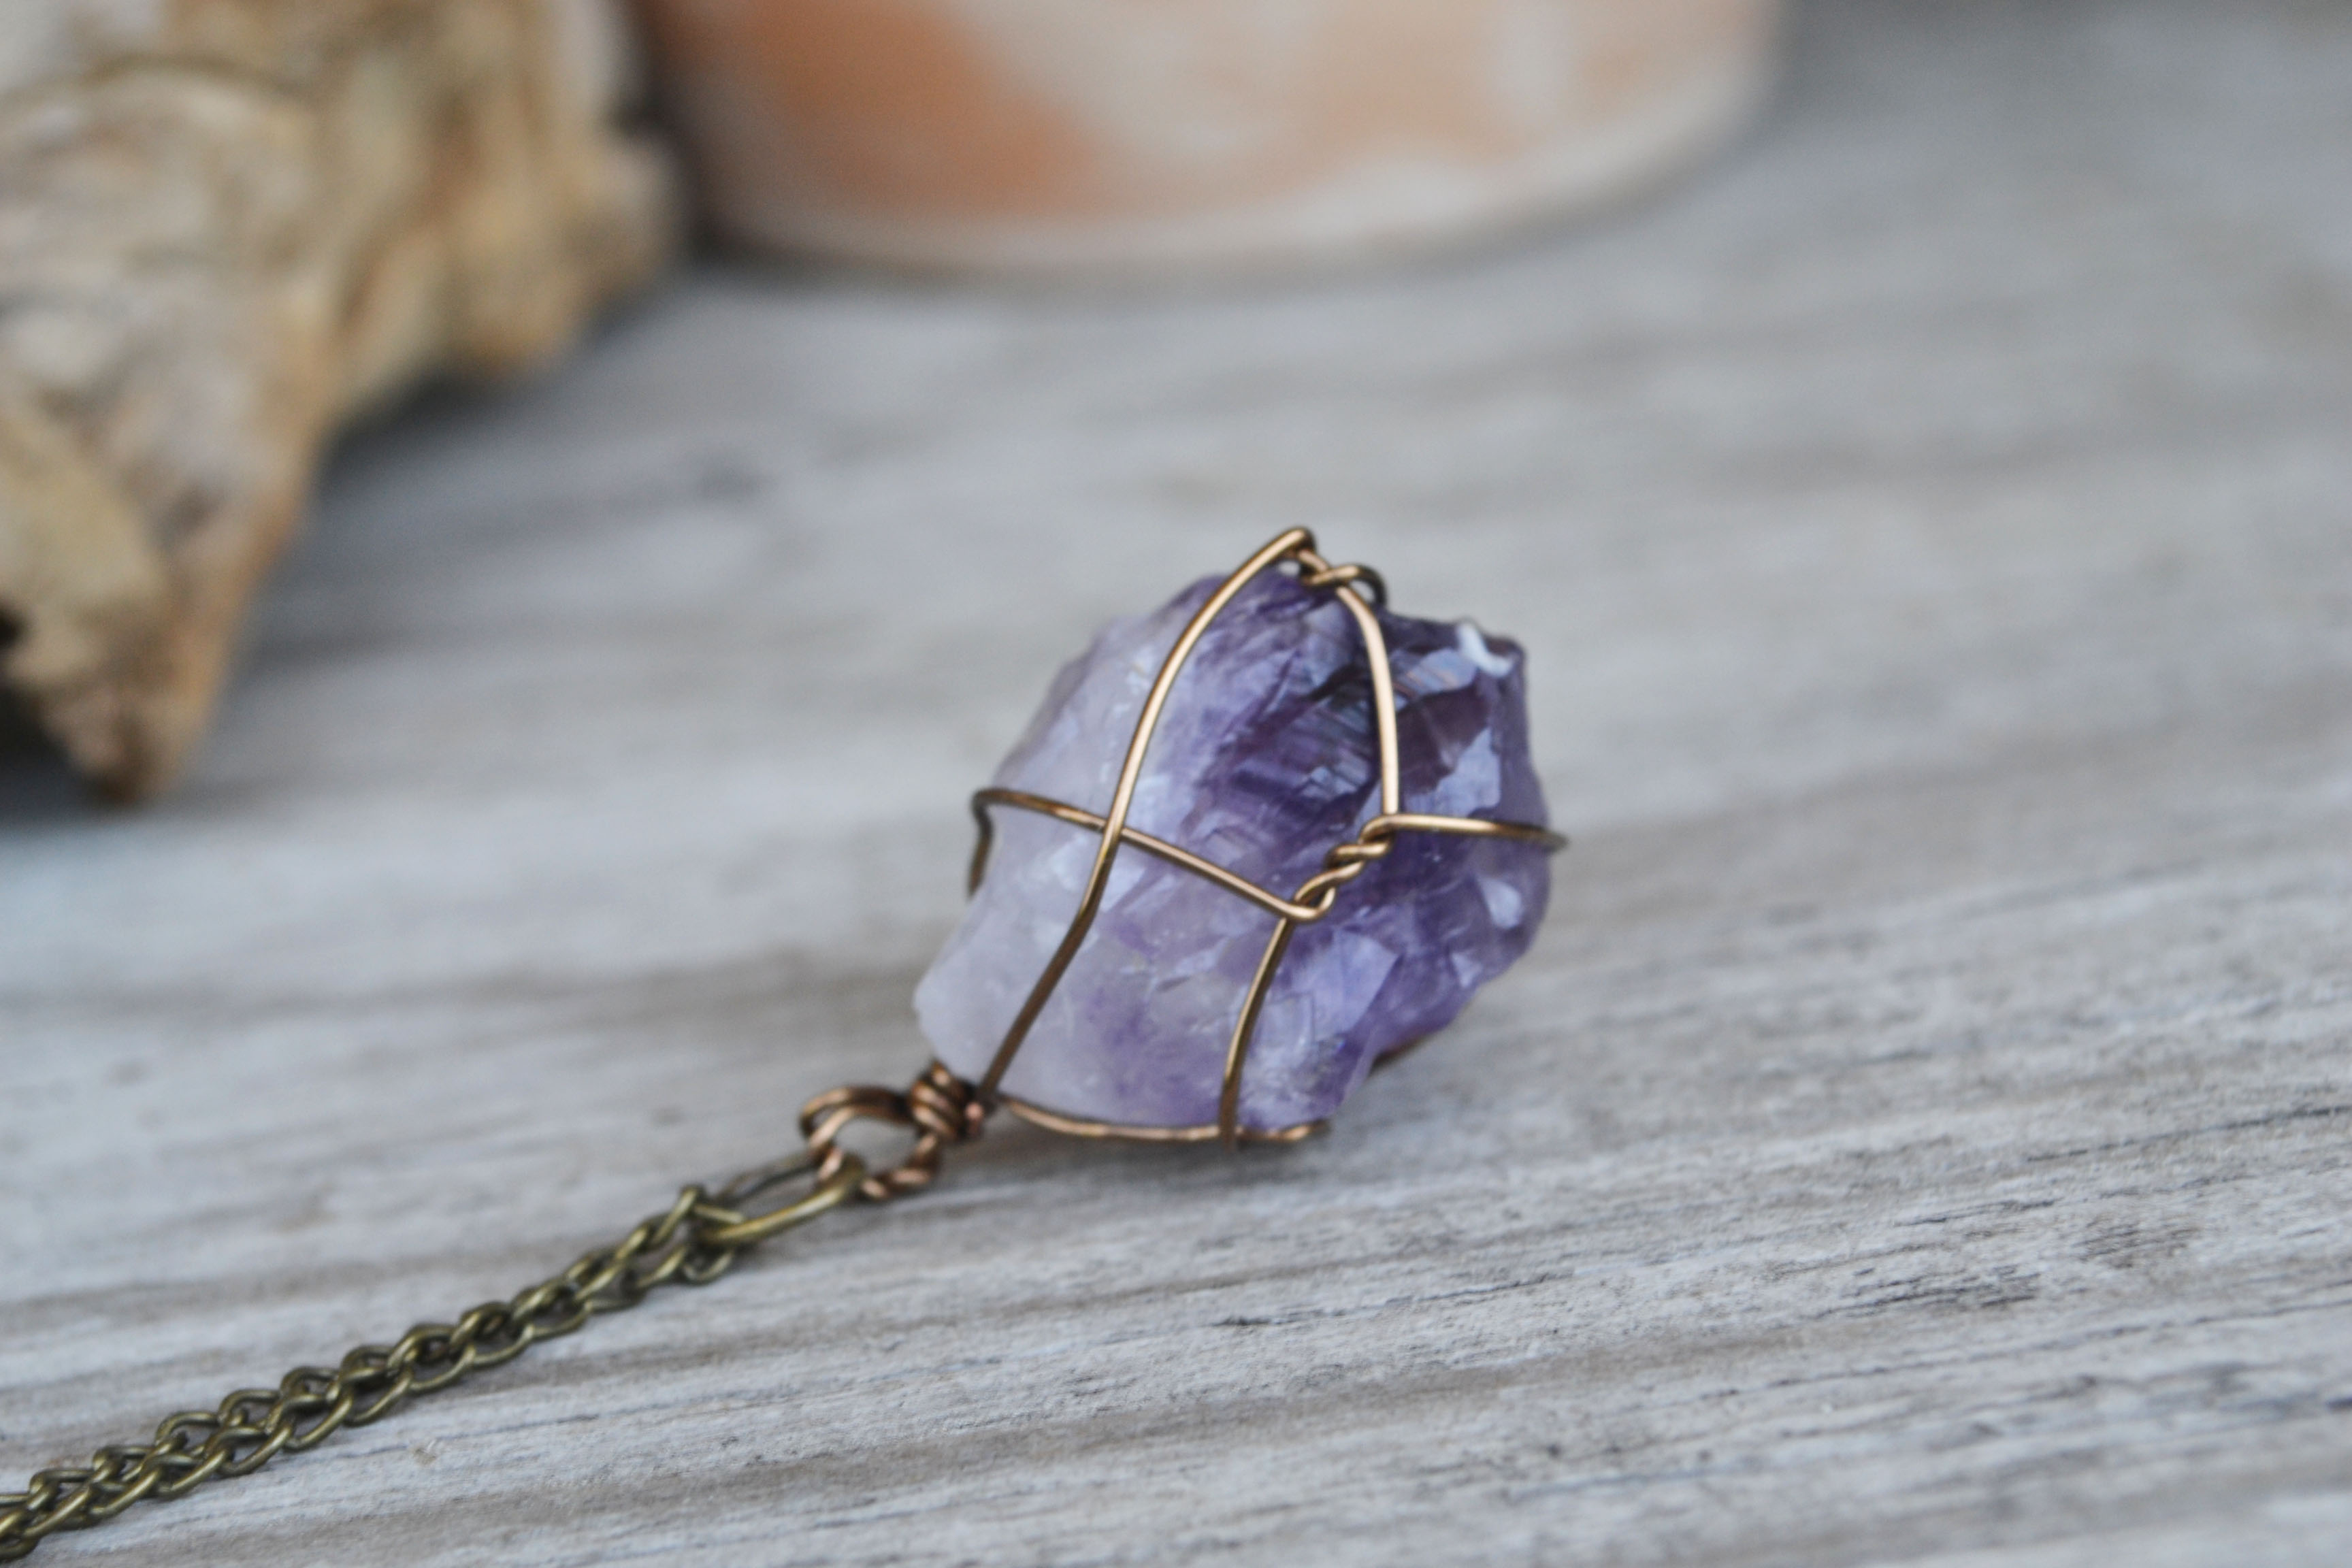 modern pendant aymethist quartz product hello necklace purple stone natural jewelry supply